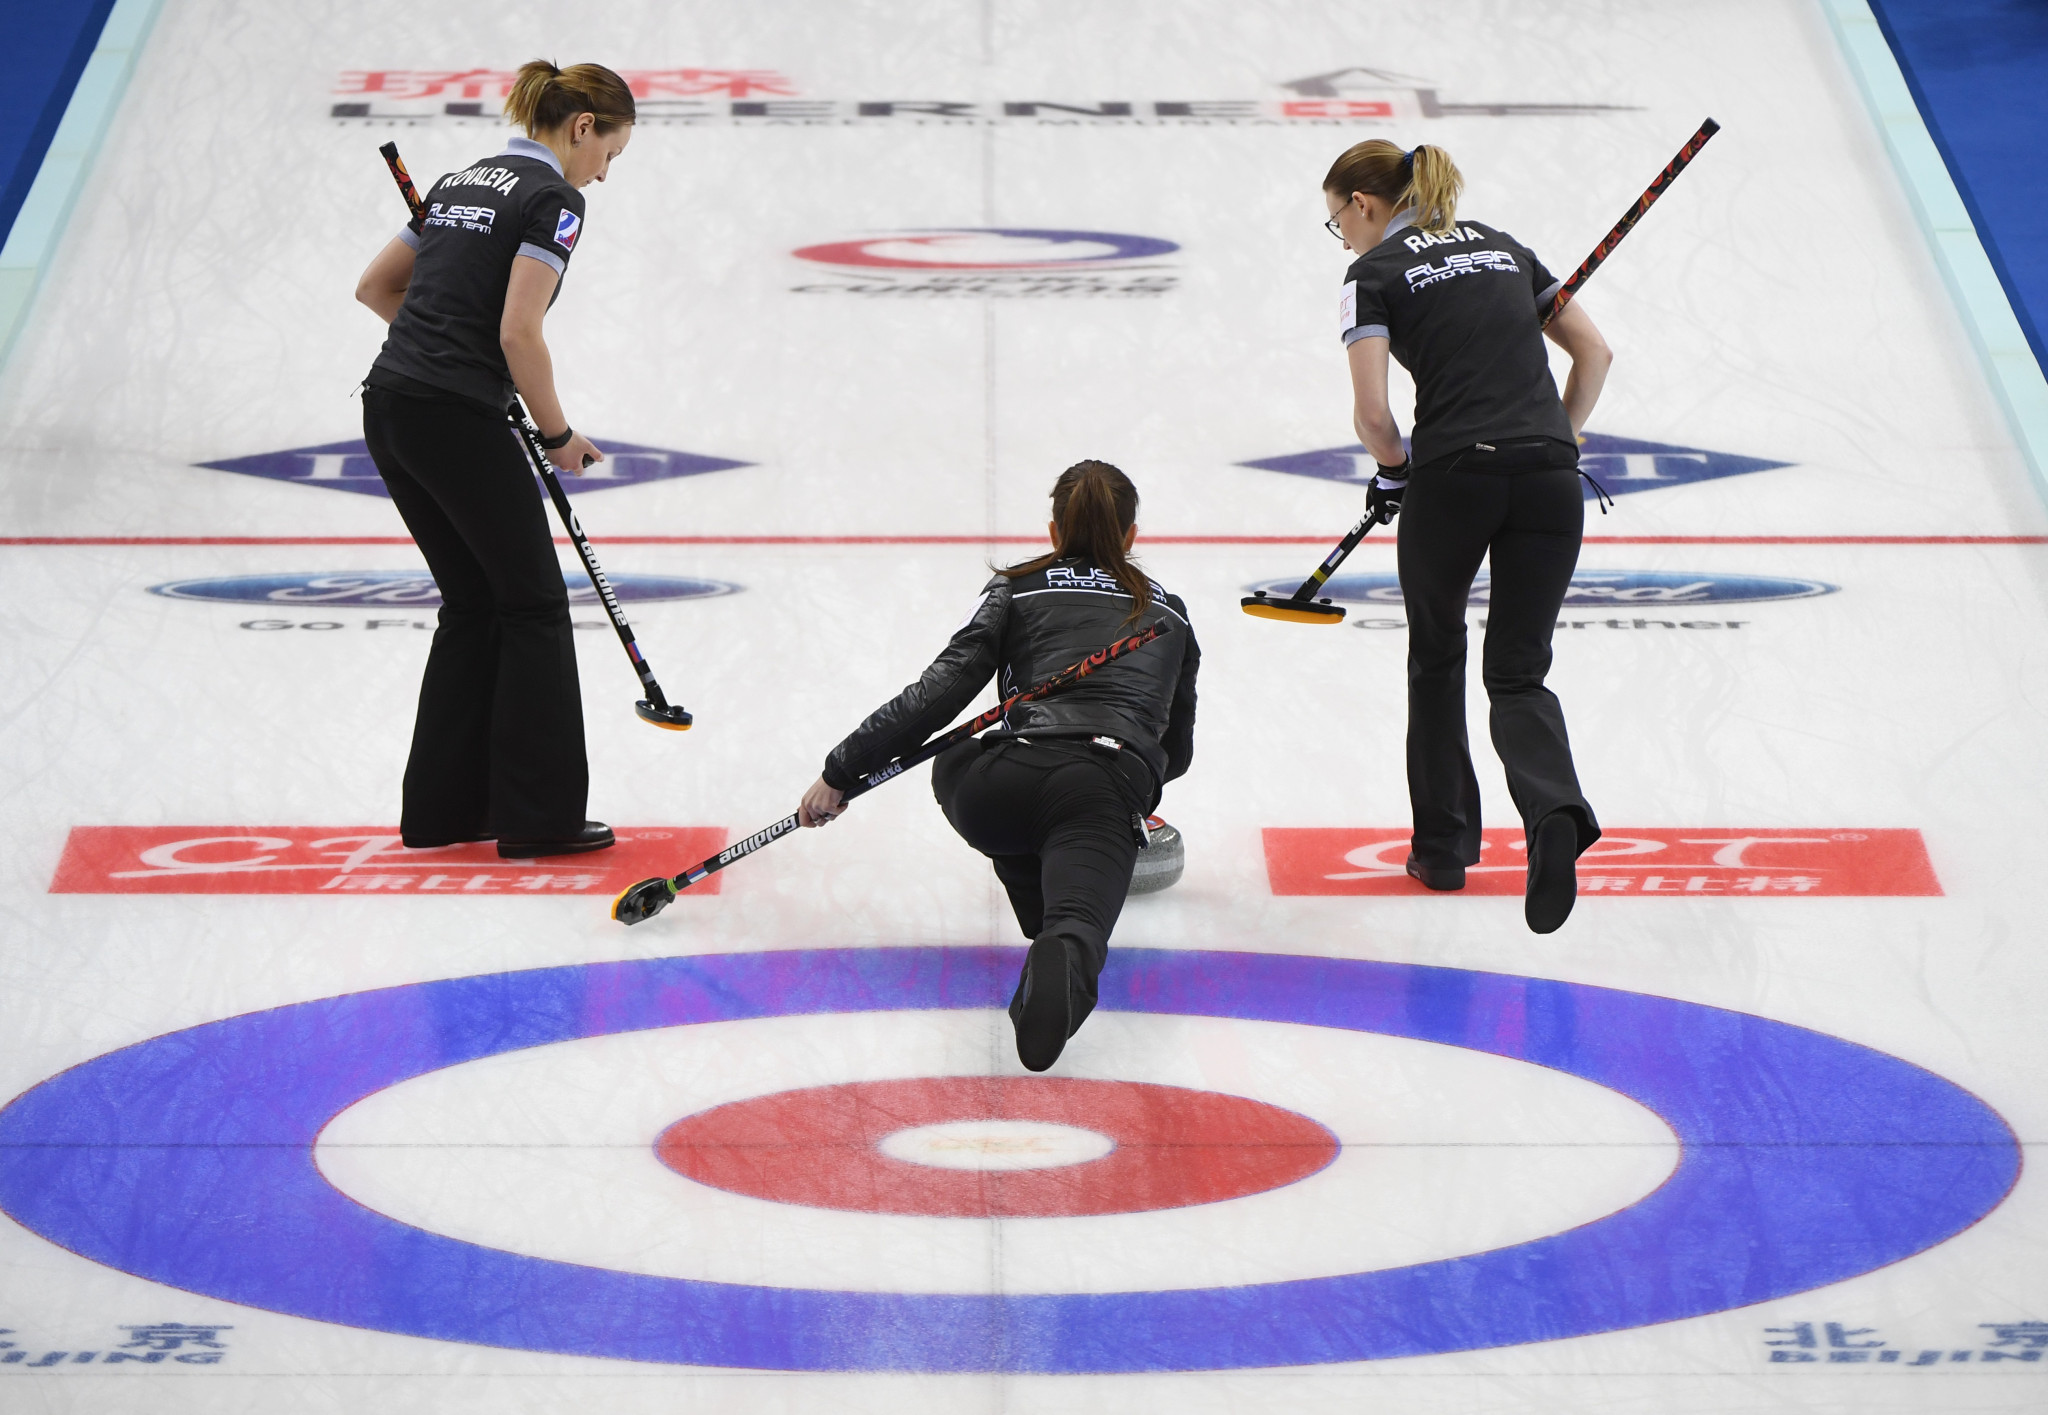 The Russian Curling Federation have suggested they may be able to host events to help keep the Curling World Cup series going after the WCF were forced to announce yesterday they were suspending it ©Getty Images